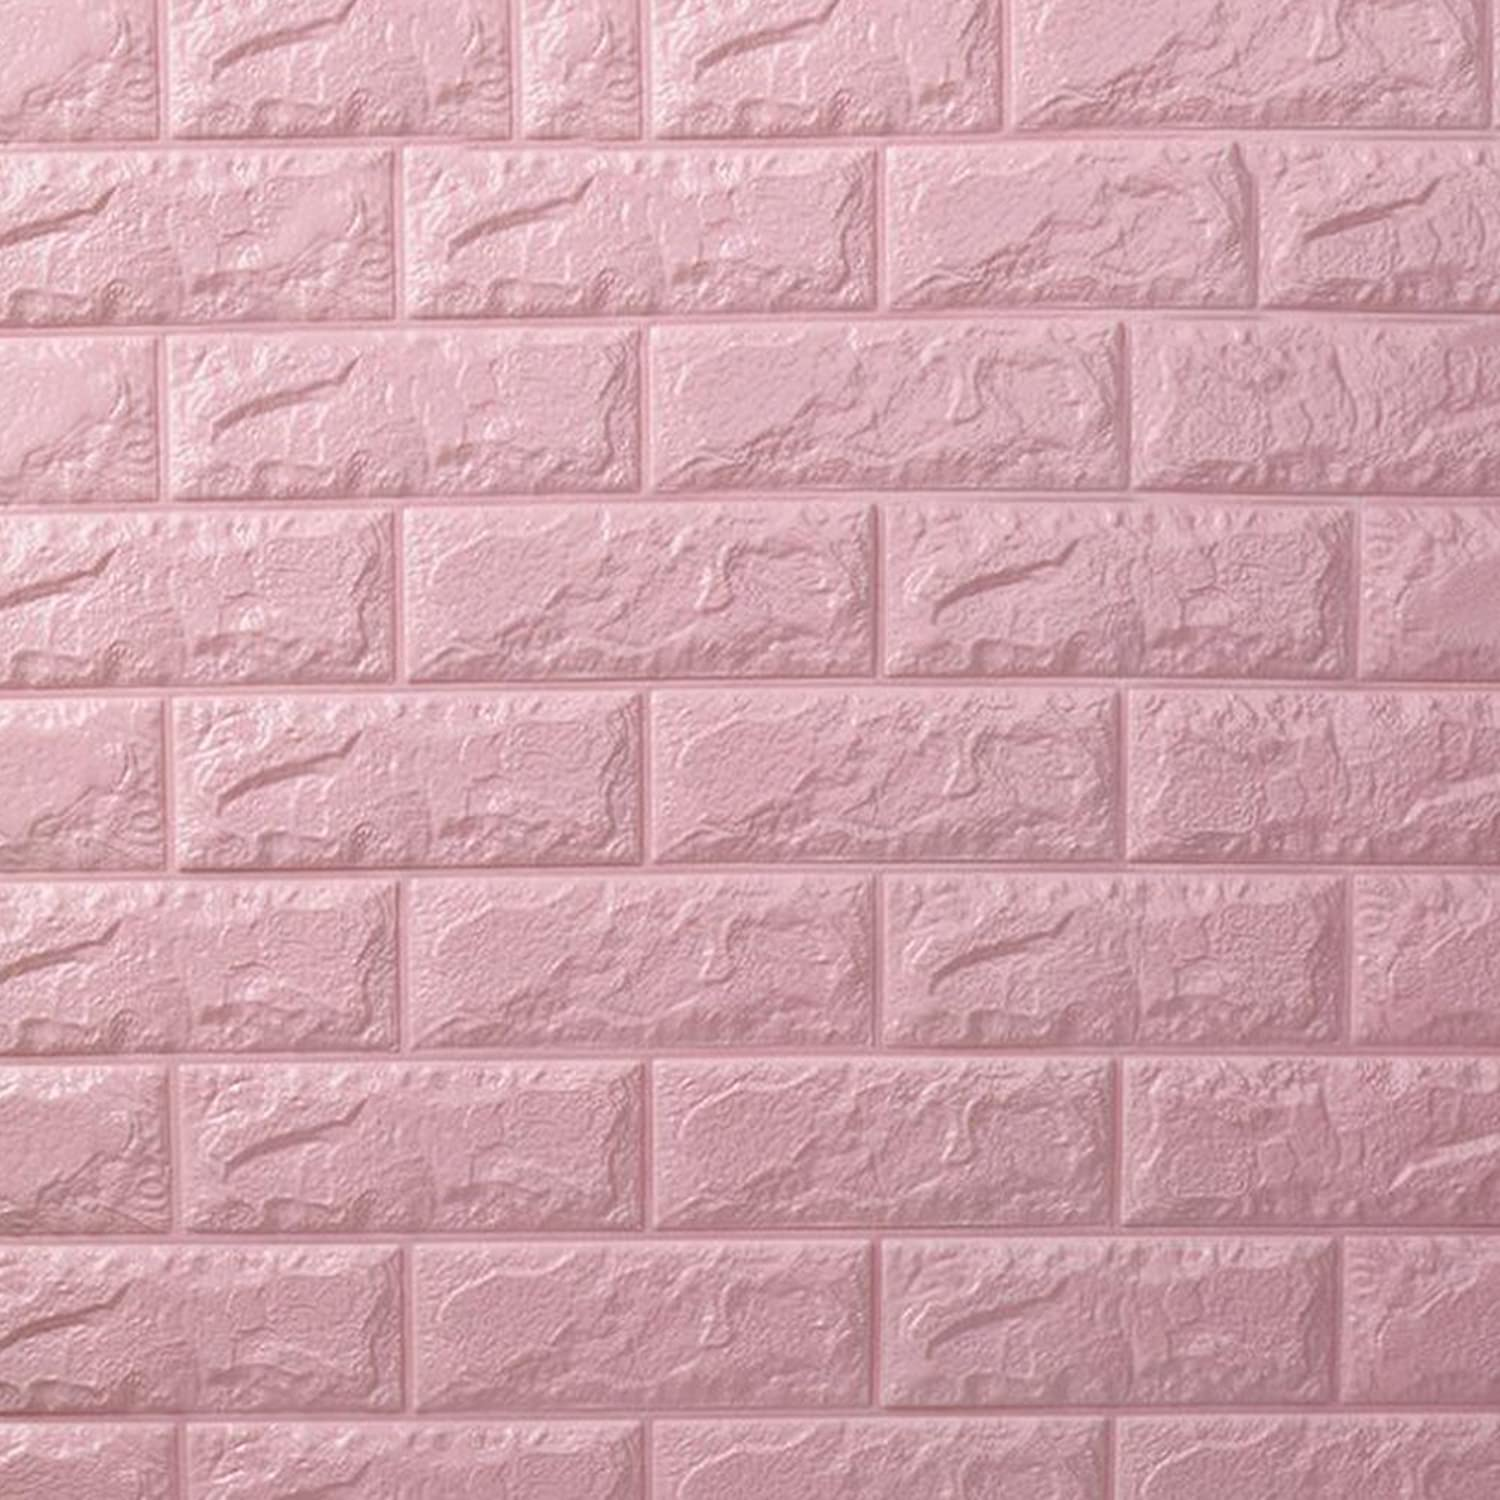 3D Wallpaper Foam DIY Wall Stickers Home Decoration Wall Decor Embossed Brick Stone Living Room Bedroom Background Home Decor 28  30 Inches,H8(10PC)